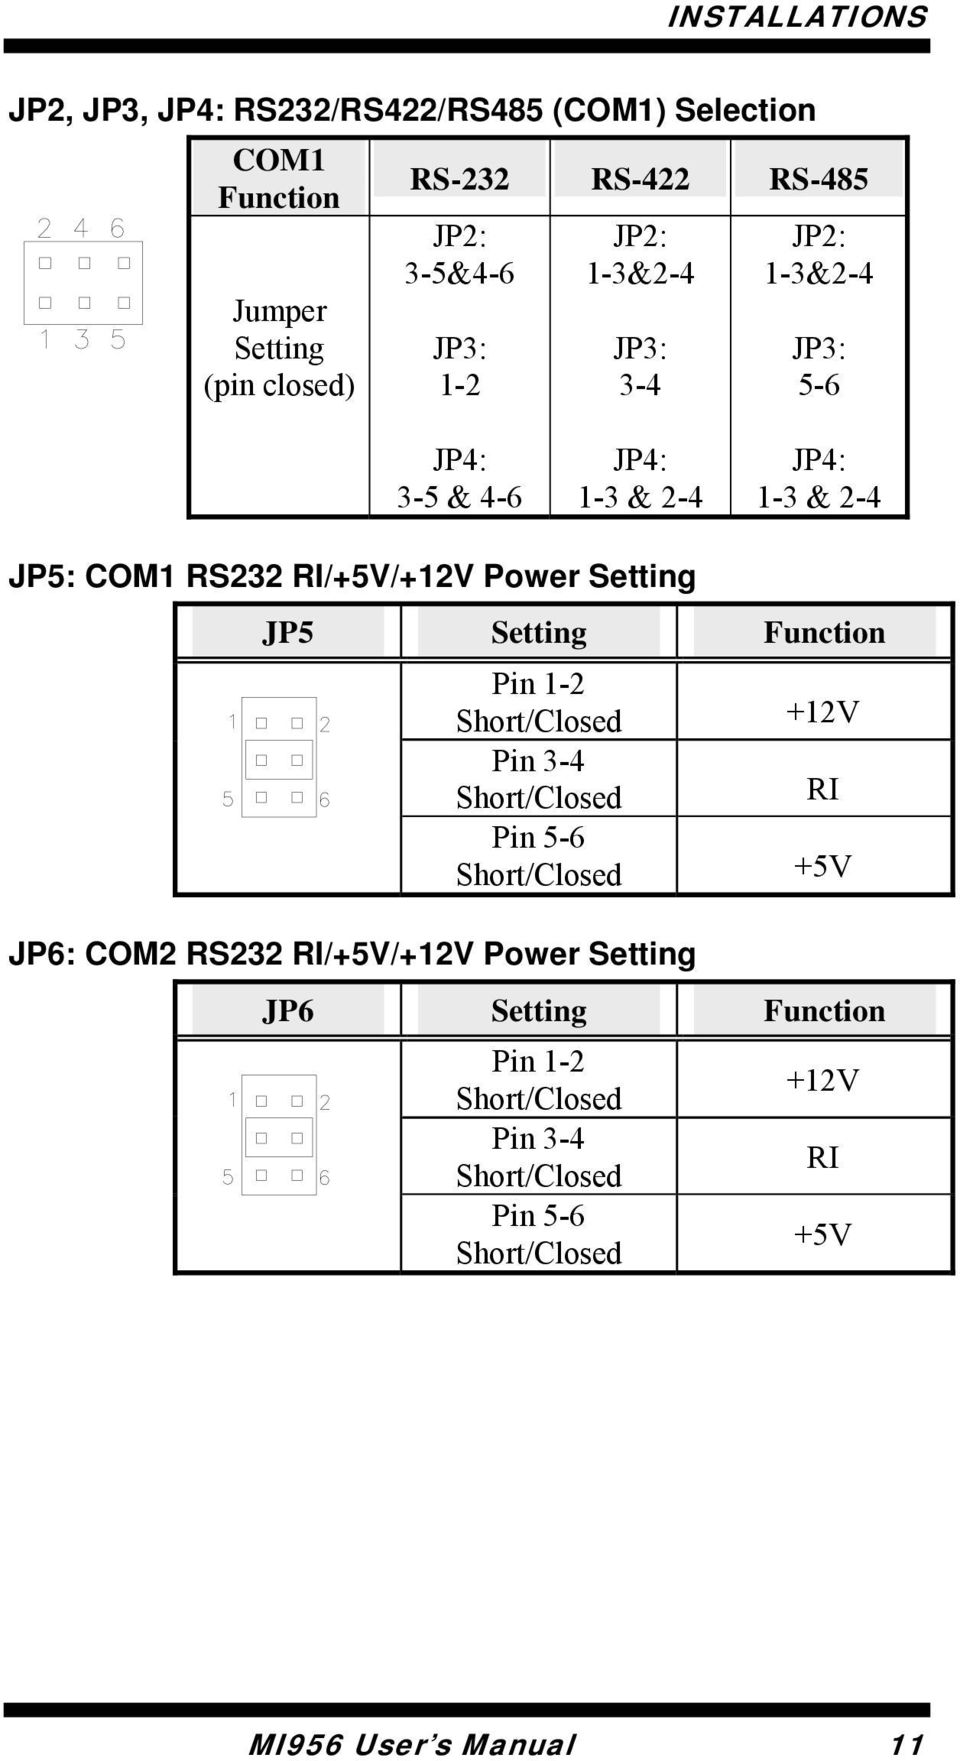 Power Setting JP5 Setting Function Pin 1-2 Short/Closed +12V Pin 3-4 Short/Closed RI Pin 5-6 Short/Closed +5V JP6: COM2 RS232